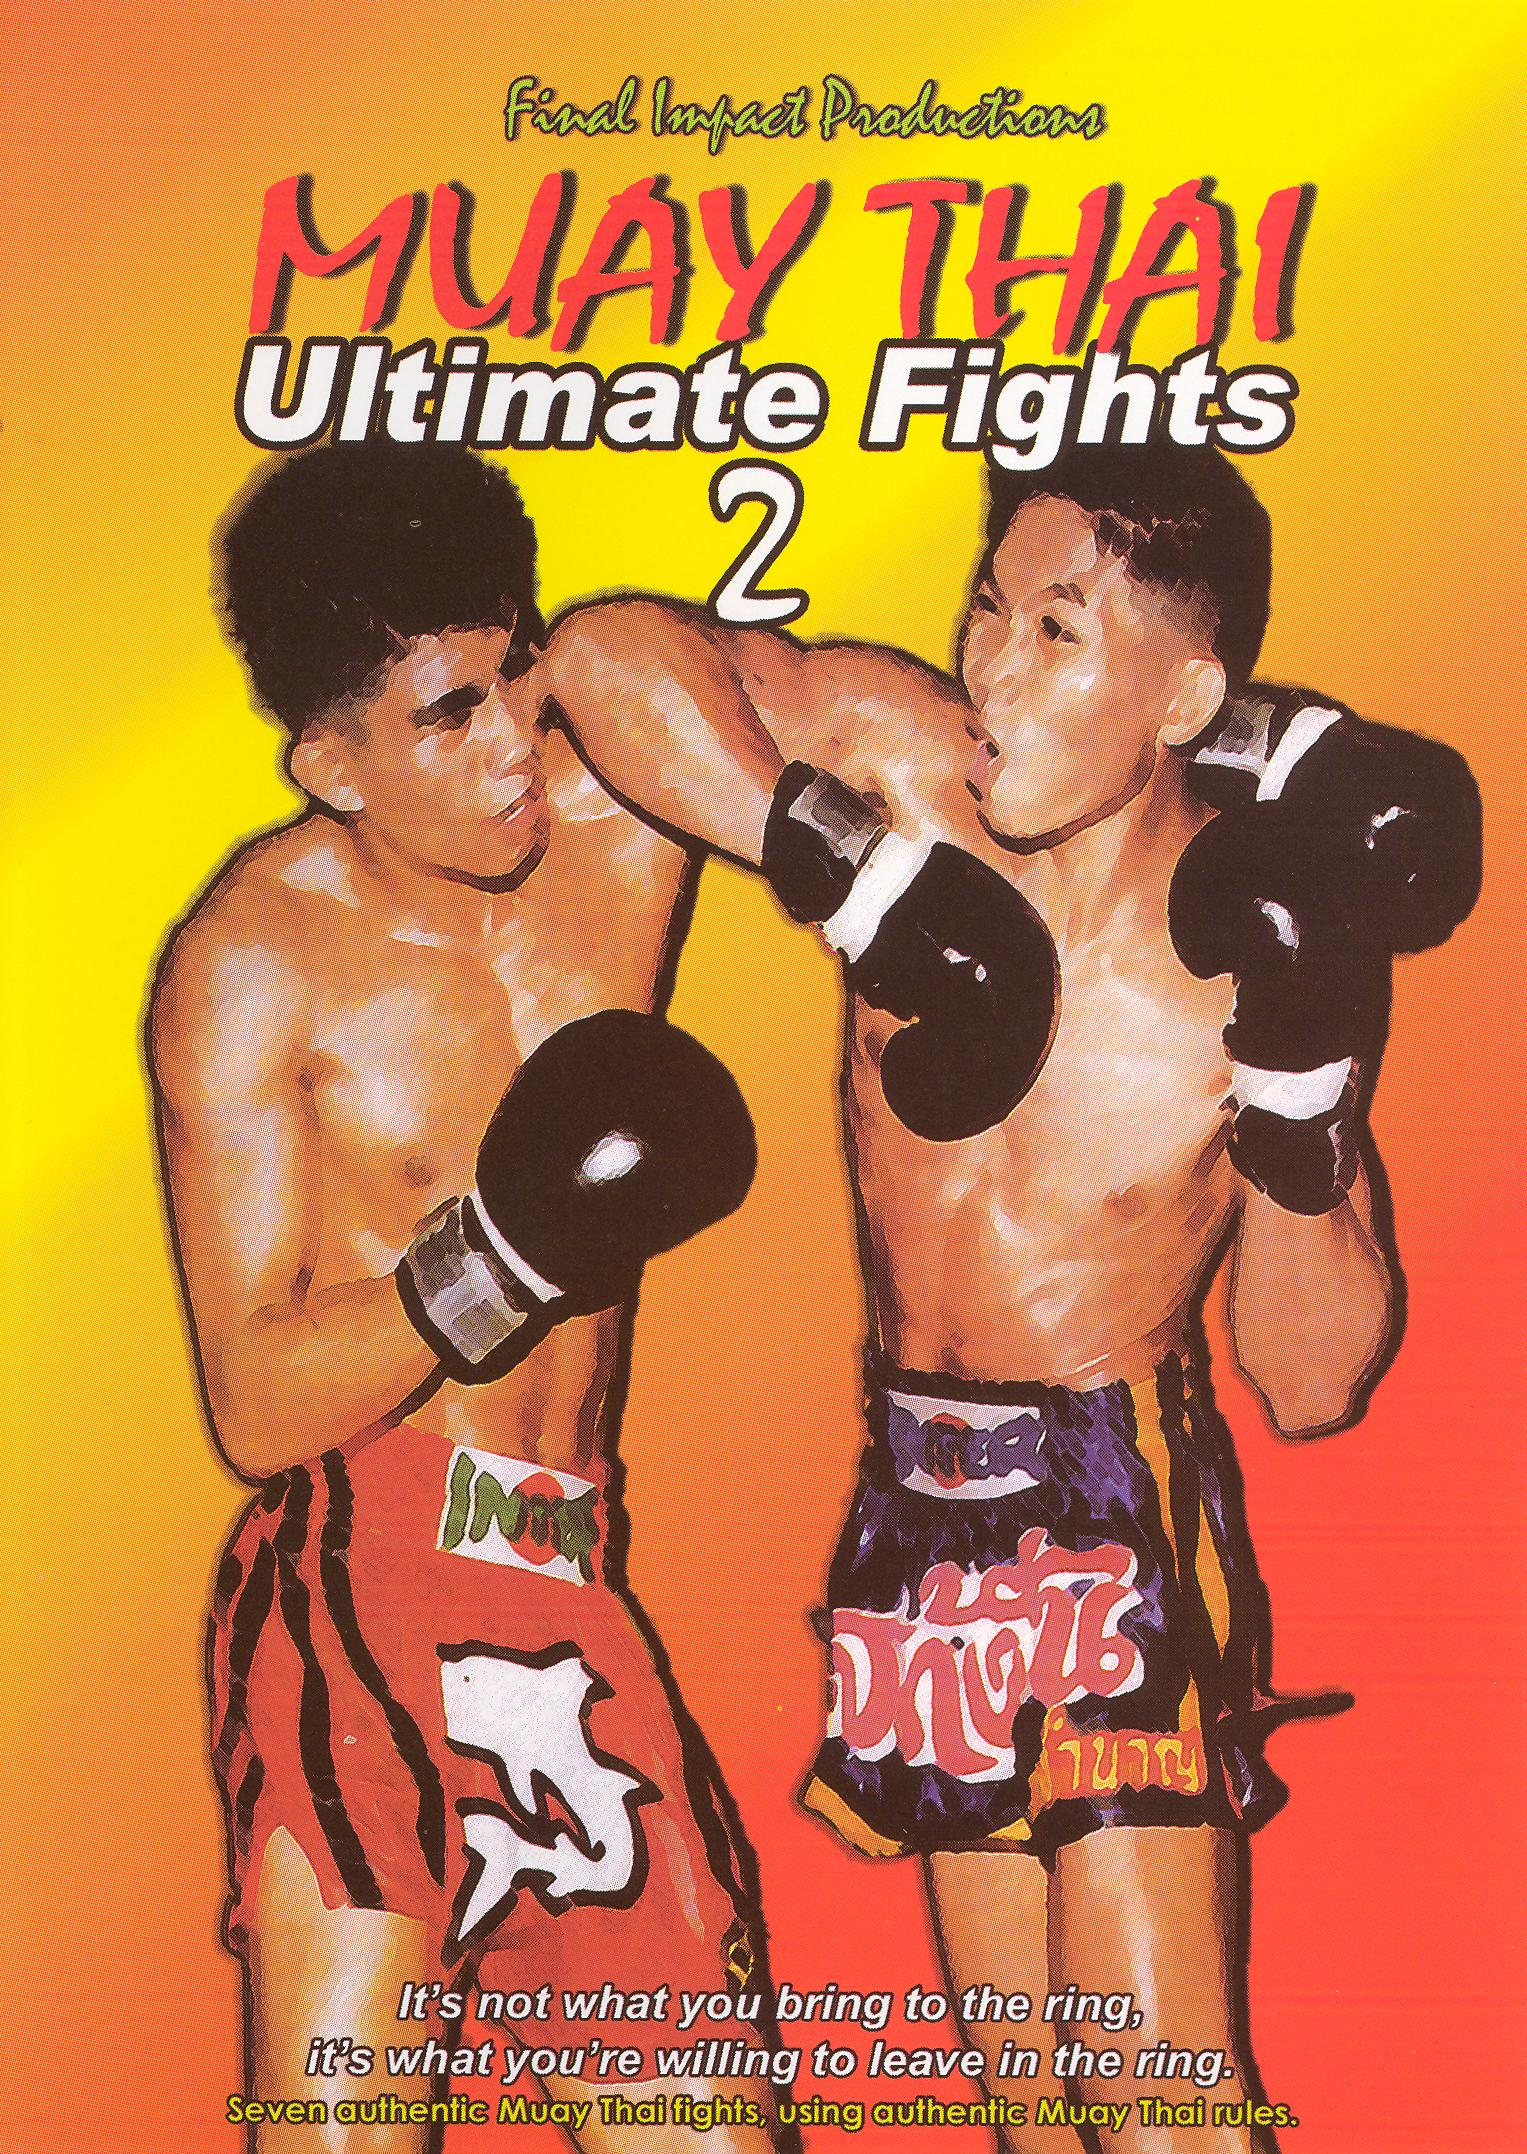 Muay Thai Ultimate Fights, Vol. 2